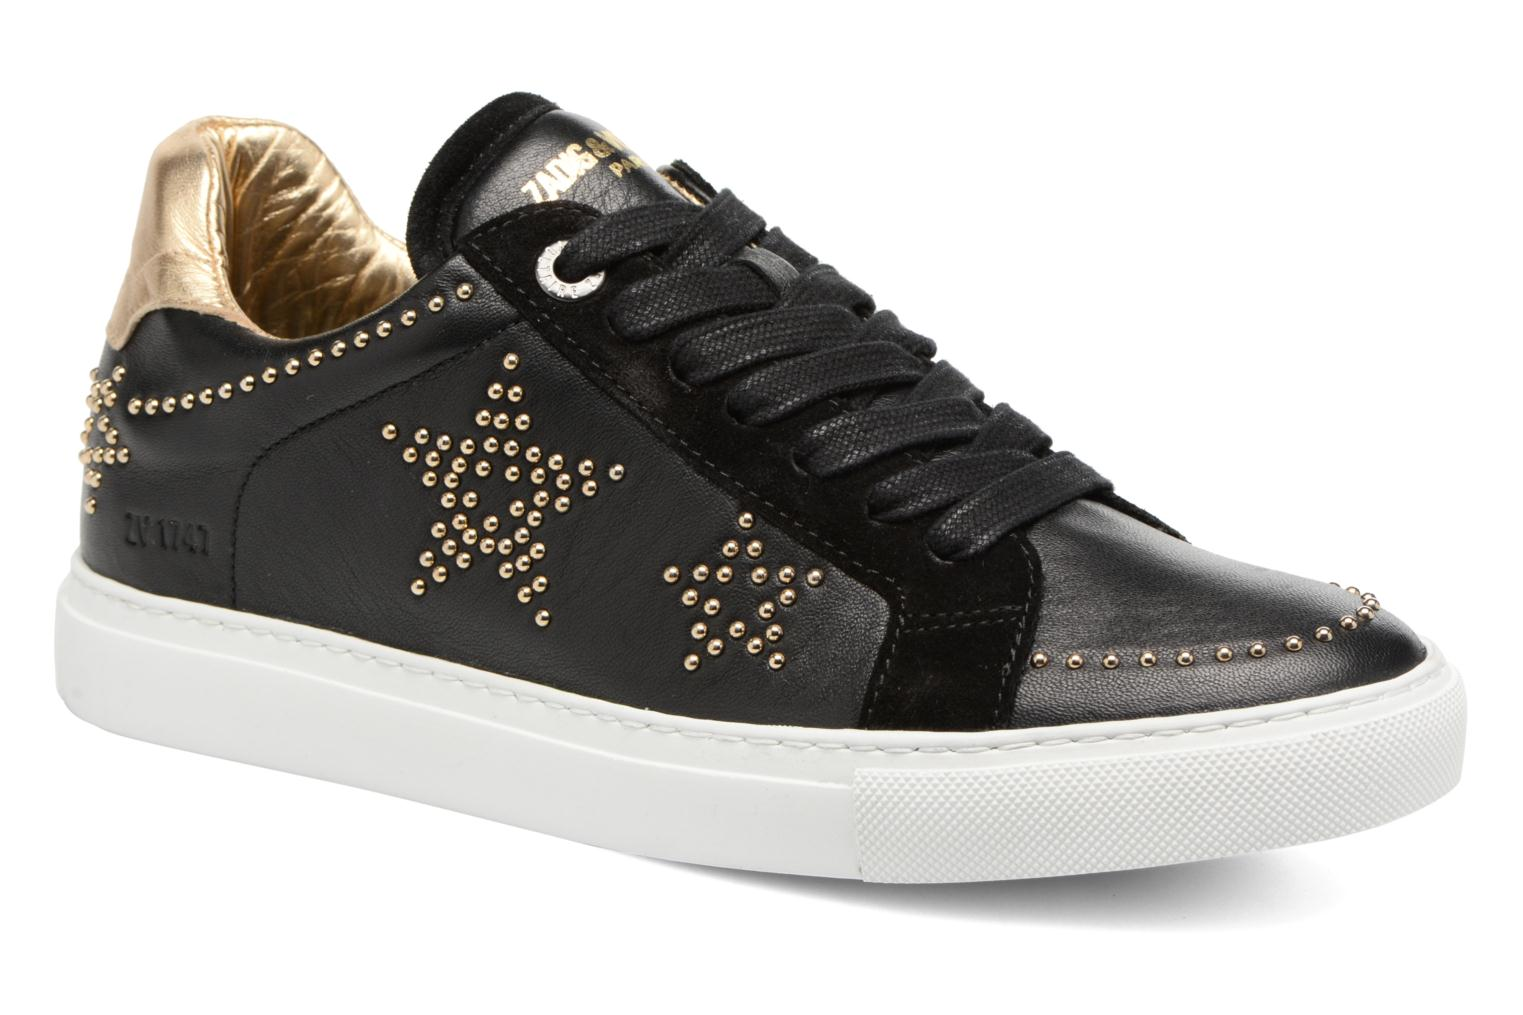 STARS by Zadig & Voltaire